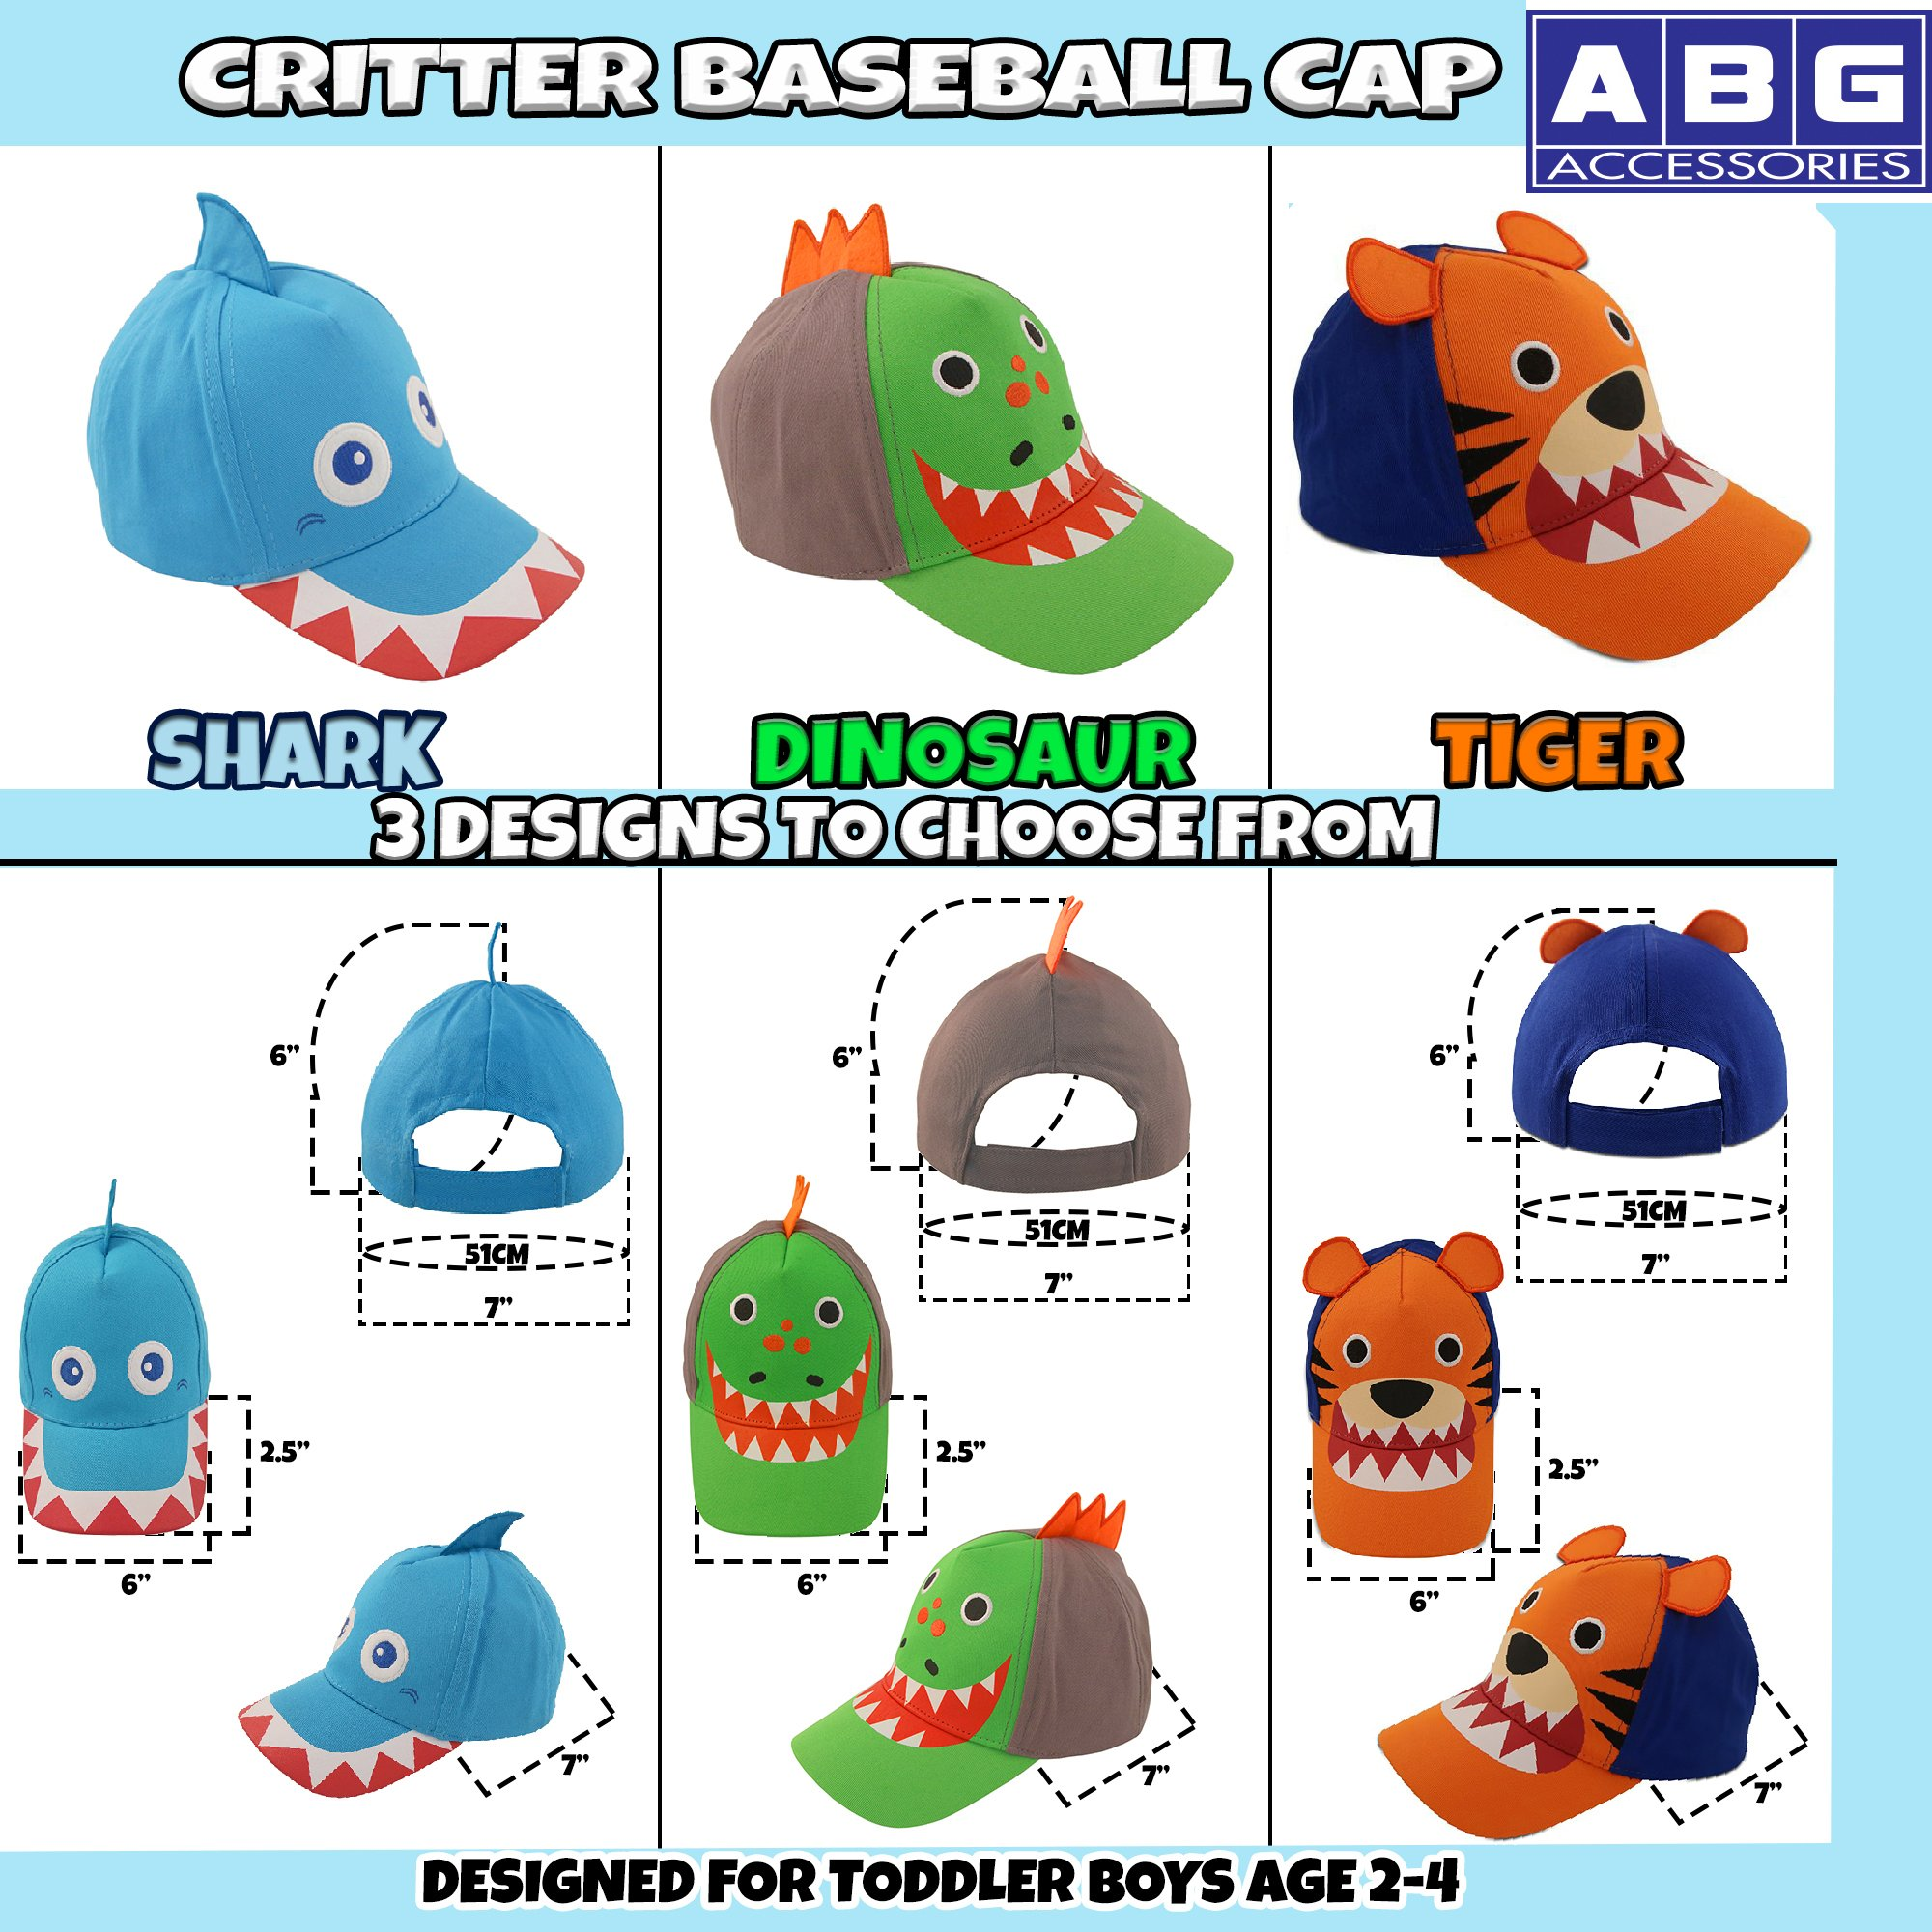 ABG Accessories Toddler Boys Cotton Baseball Cap with Assorted Animal Critter Designs, Age 2-4 (Dinosaur Design – Green/Grey) by ABG Accessories (Image #3)